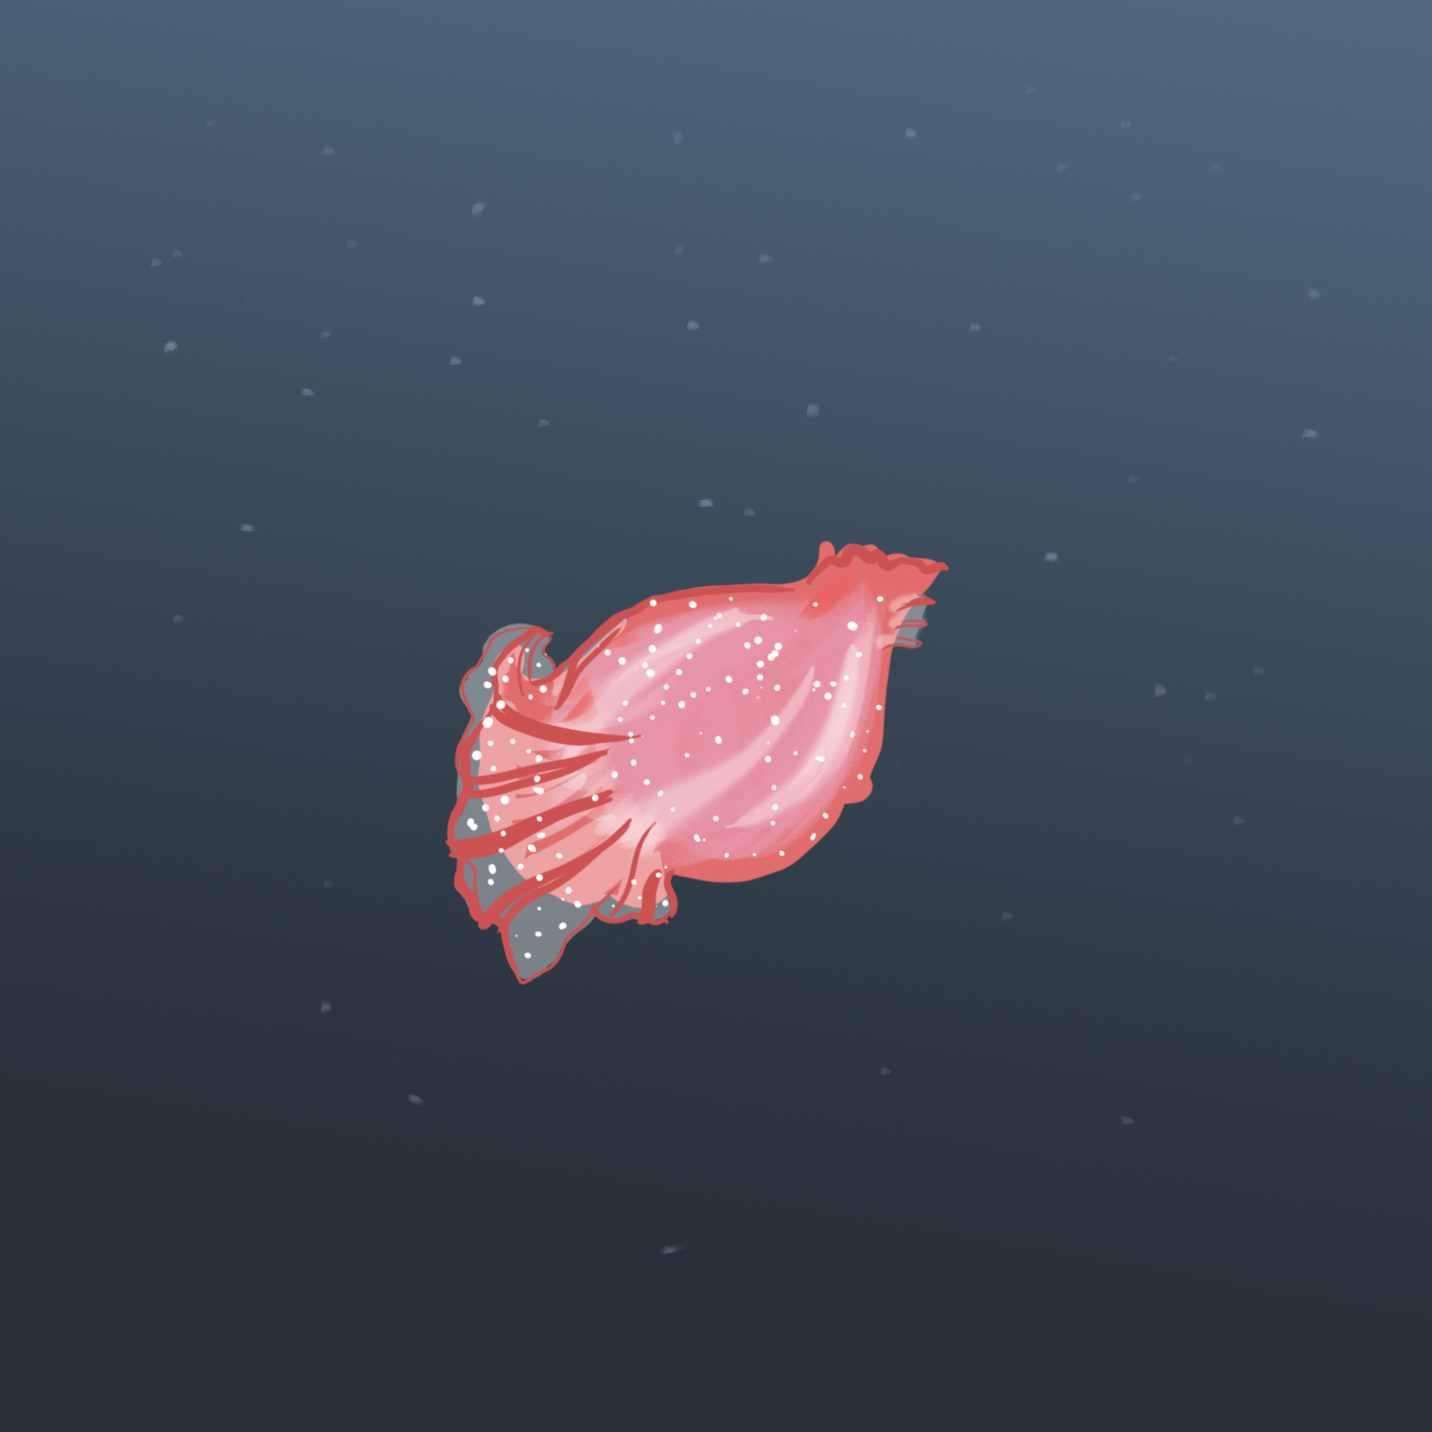 creatures-animaux-poissons-abysses